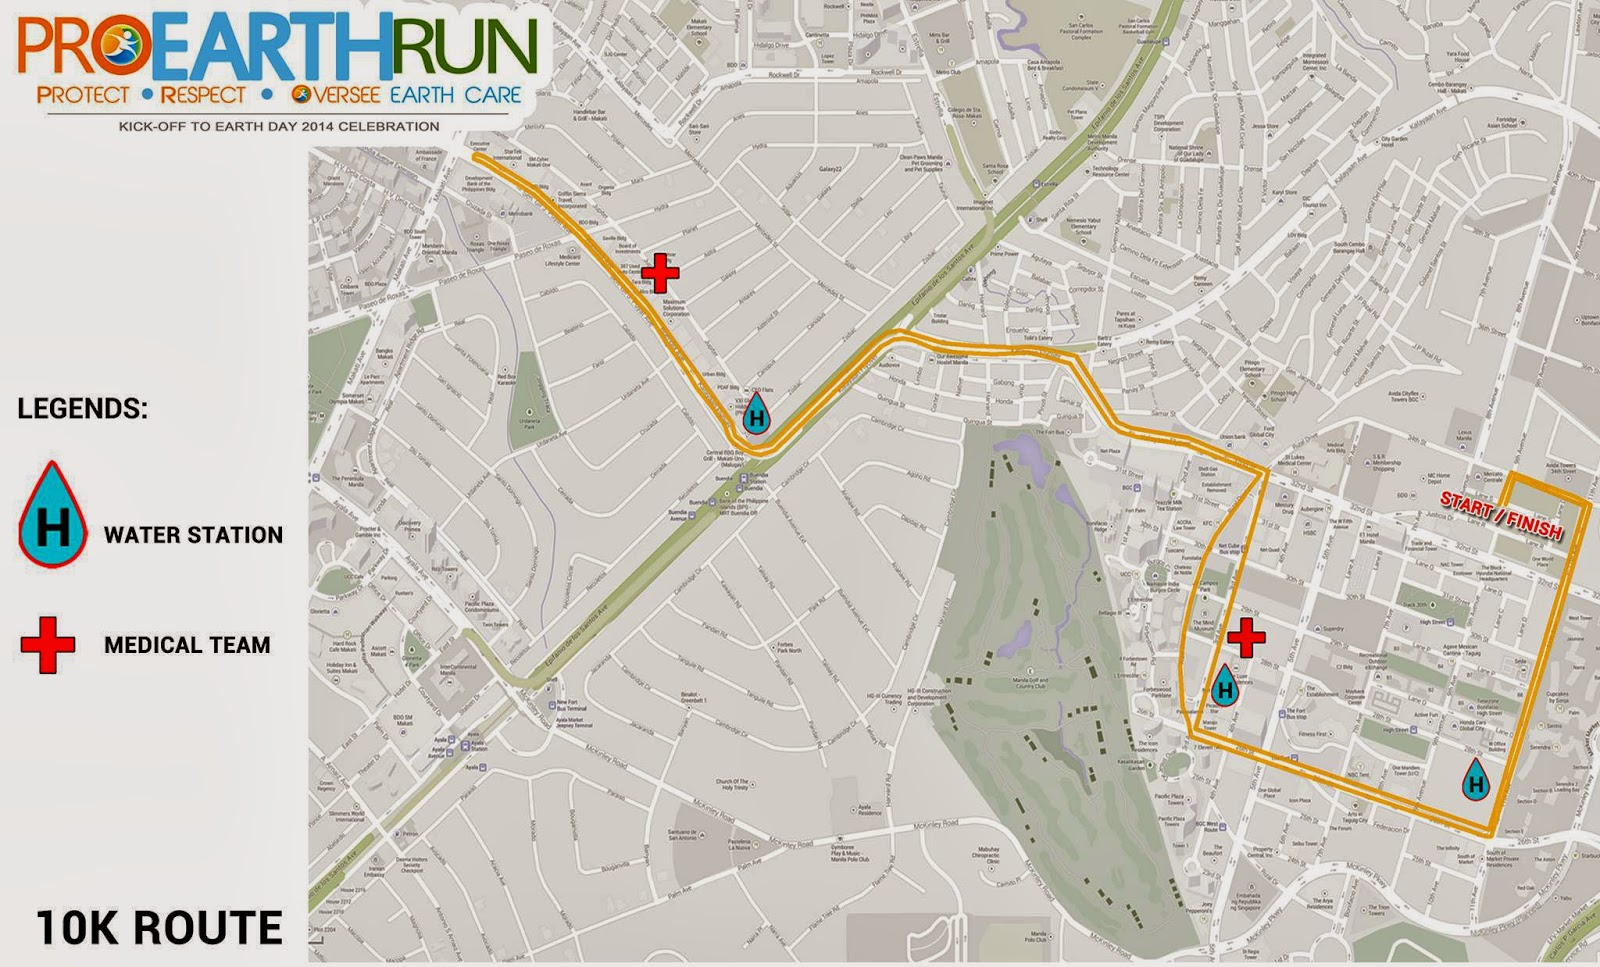 Map of 10k Route for Pro Earth Run 2014